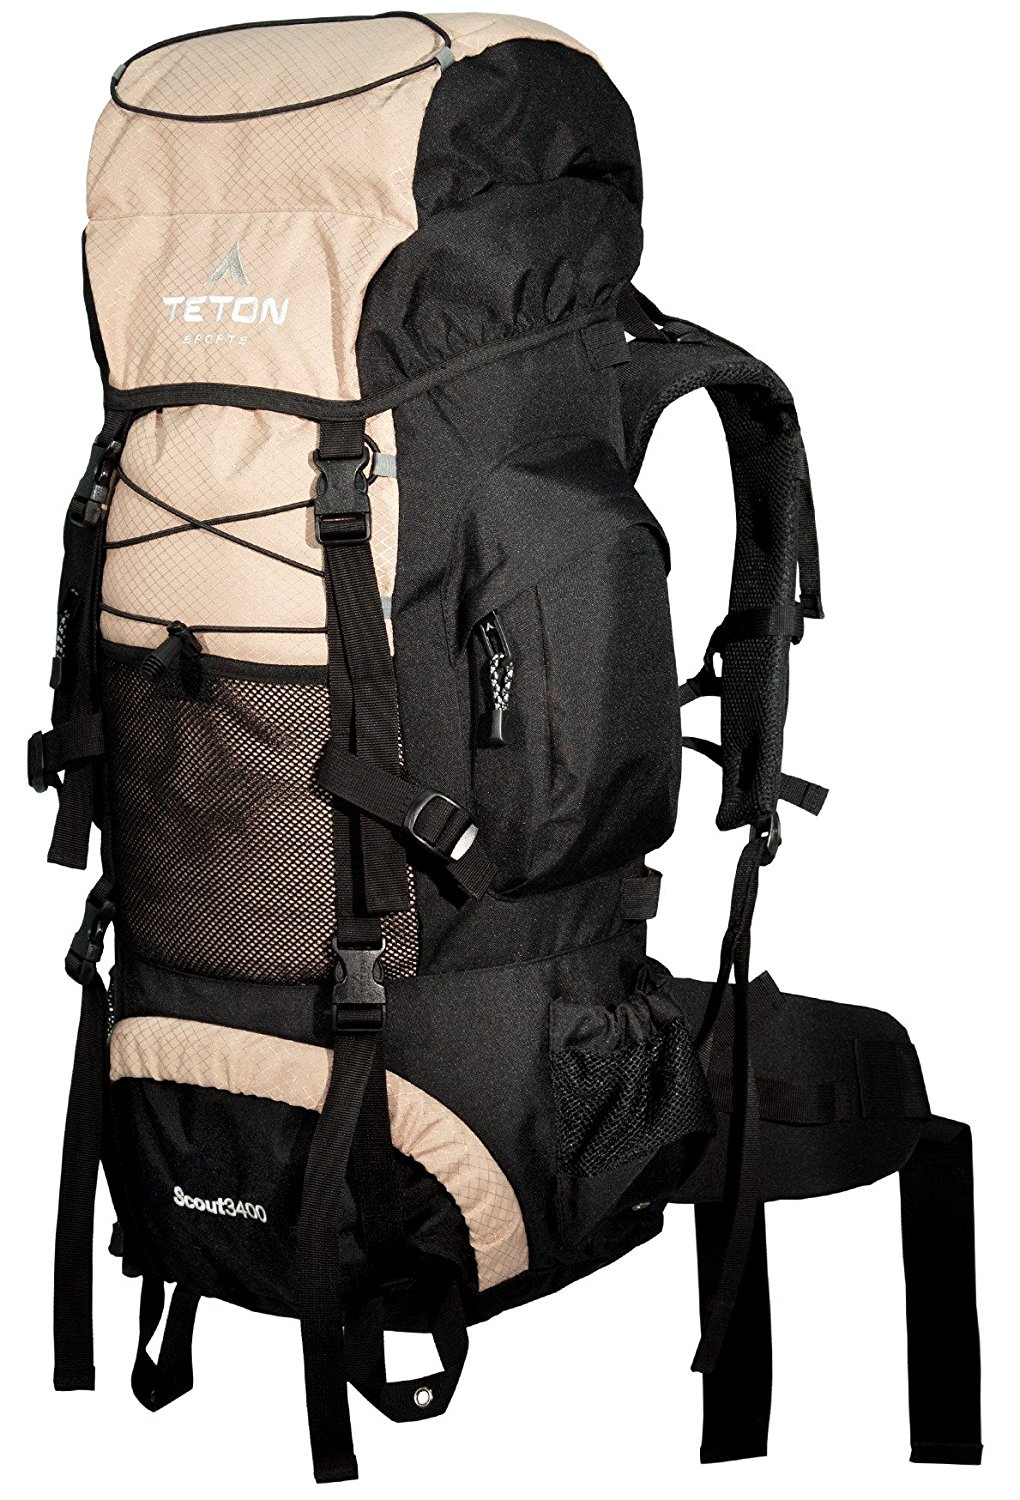 eco backpack - I still haven't found an Eco Backpack the size of my Teton Backpack, which really has it all if you ask me. But when I find it, I will be the first to buy it.Click here for this beauty Teton Backpack($ 69,99)